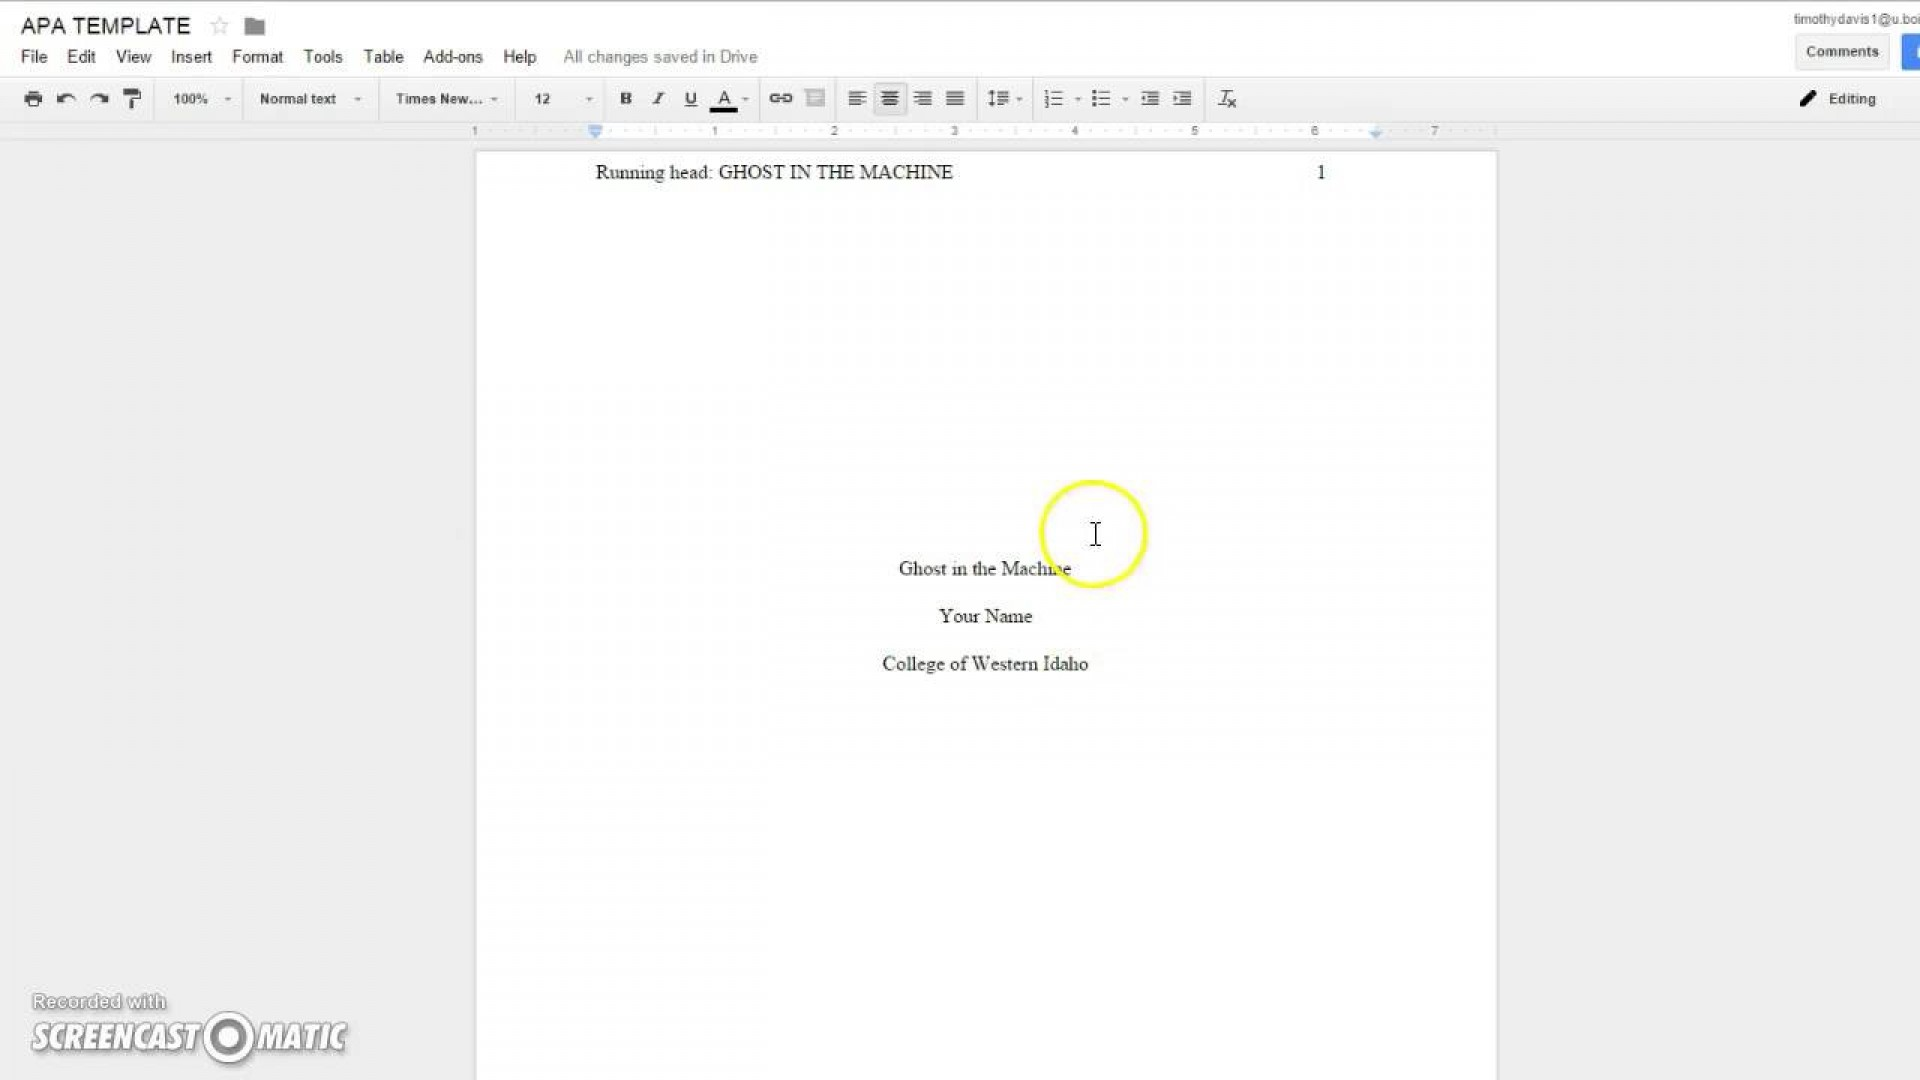 024 Research Paper Cover Page Template For Apa Rare Sample How To Do A Format 1920